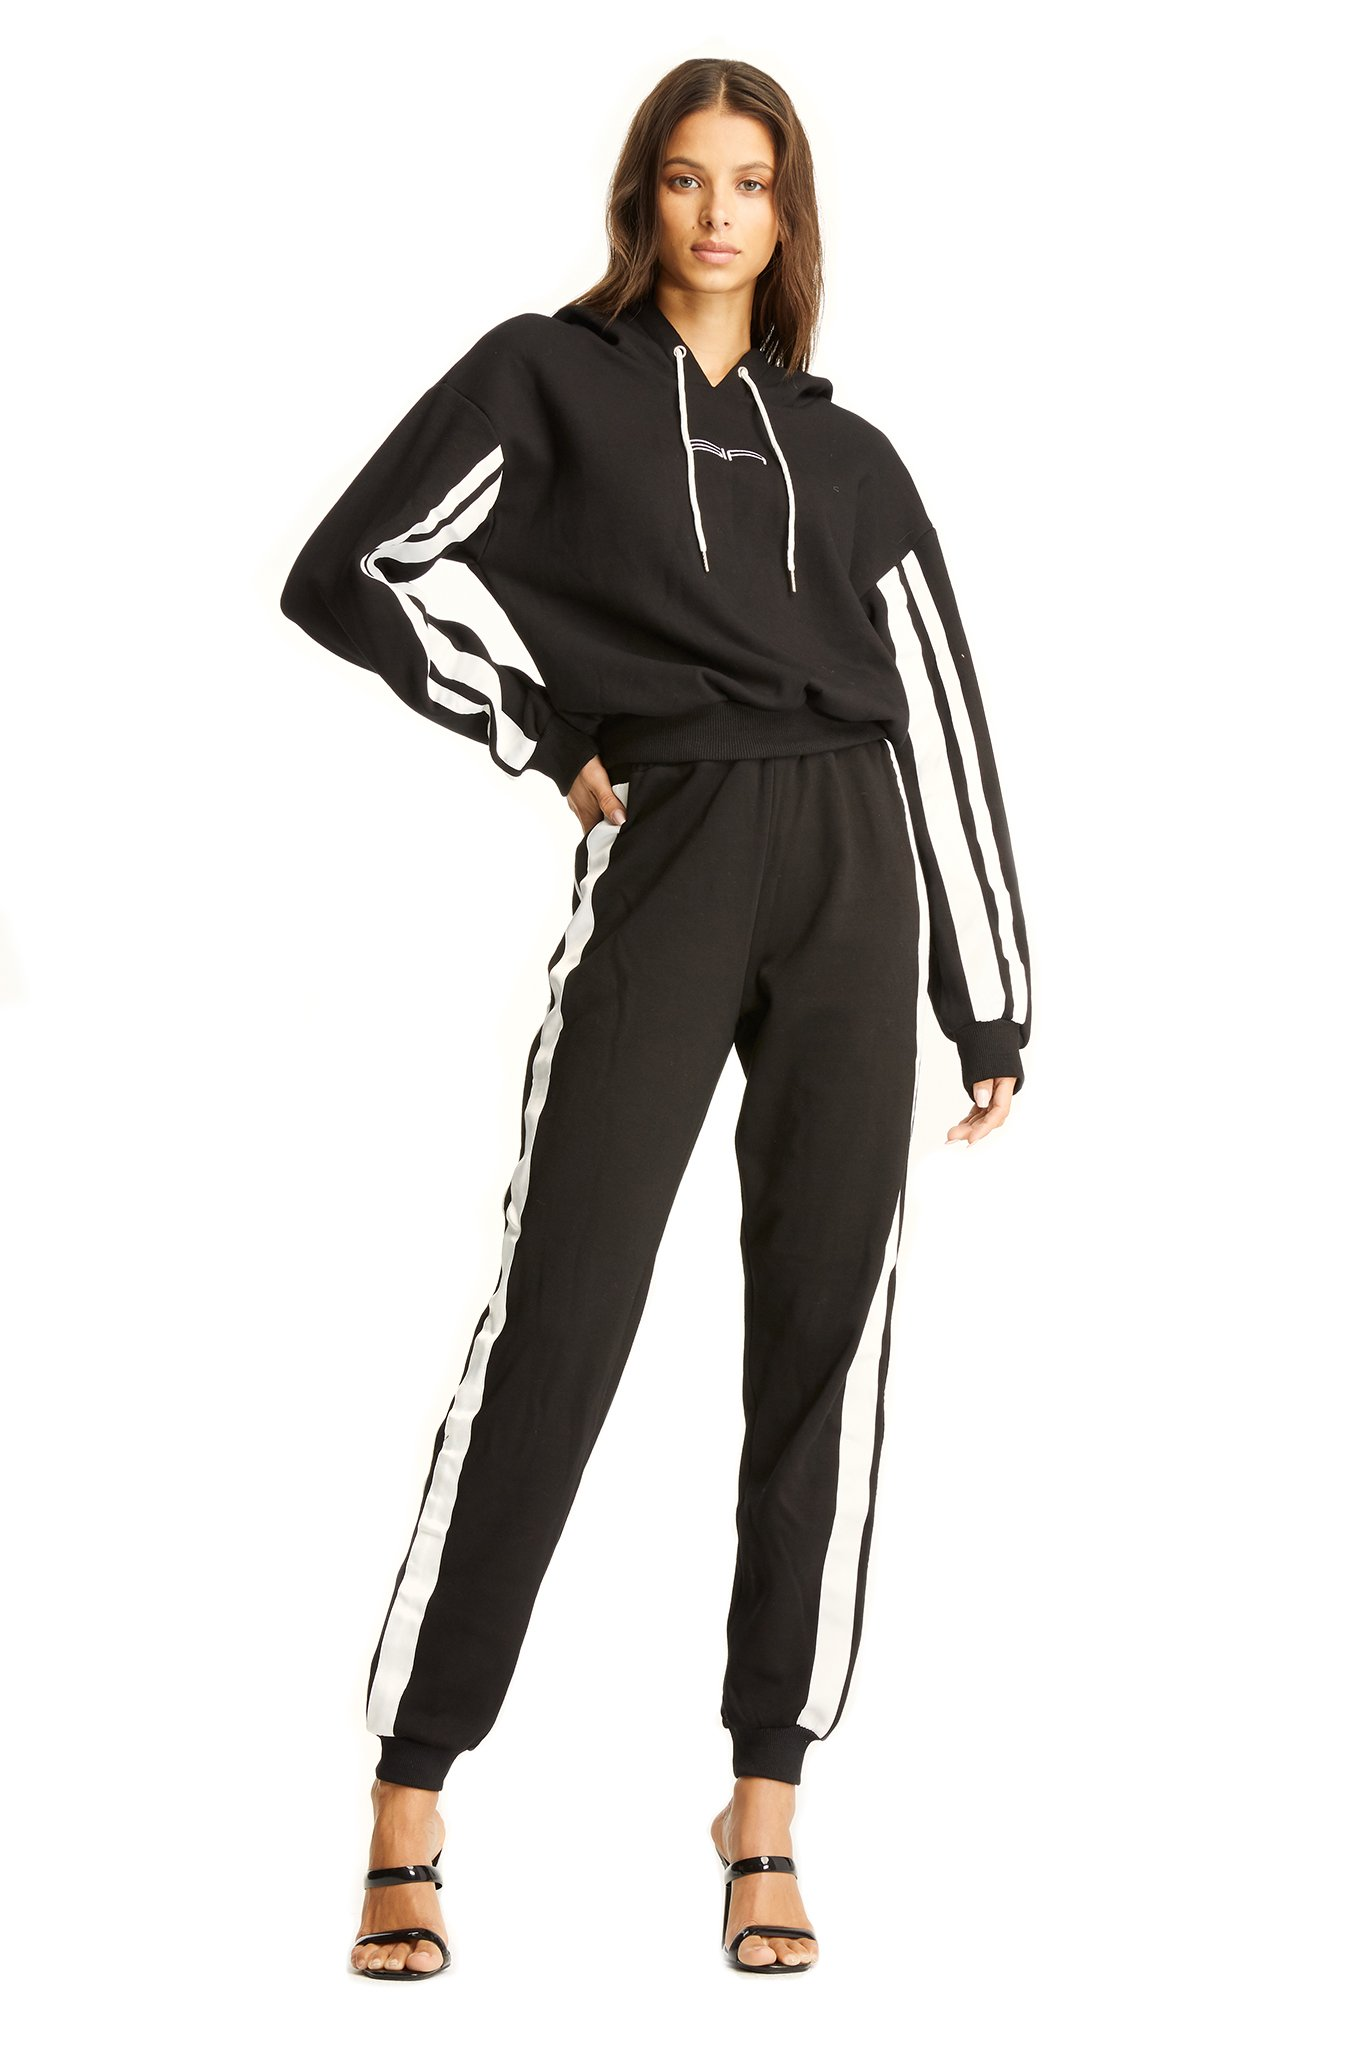 Striker pant by I.AM.GIA, available on iamgia.com for AUD45 Olivia Culpo Pants Exact Product